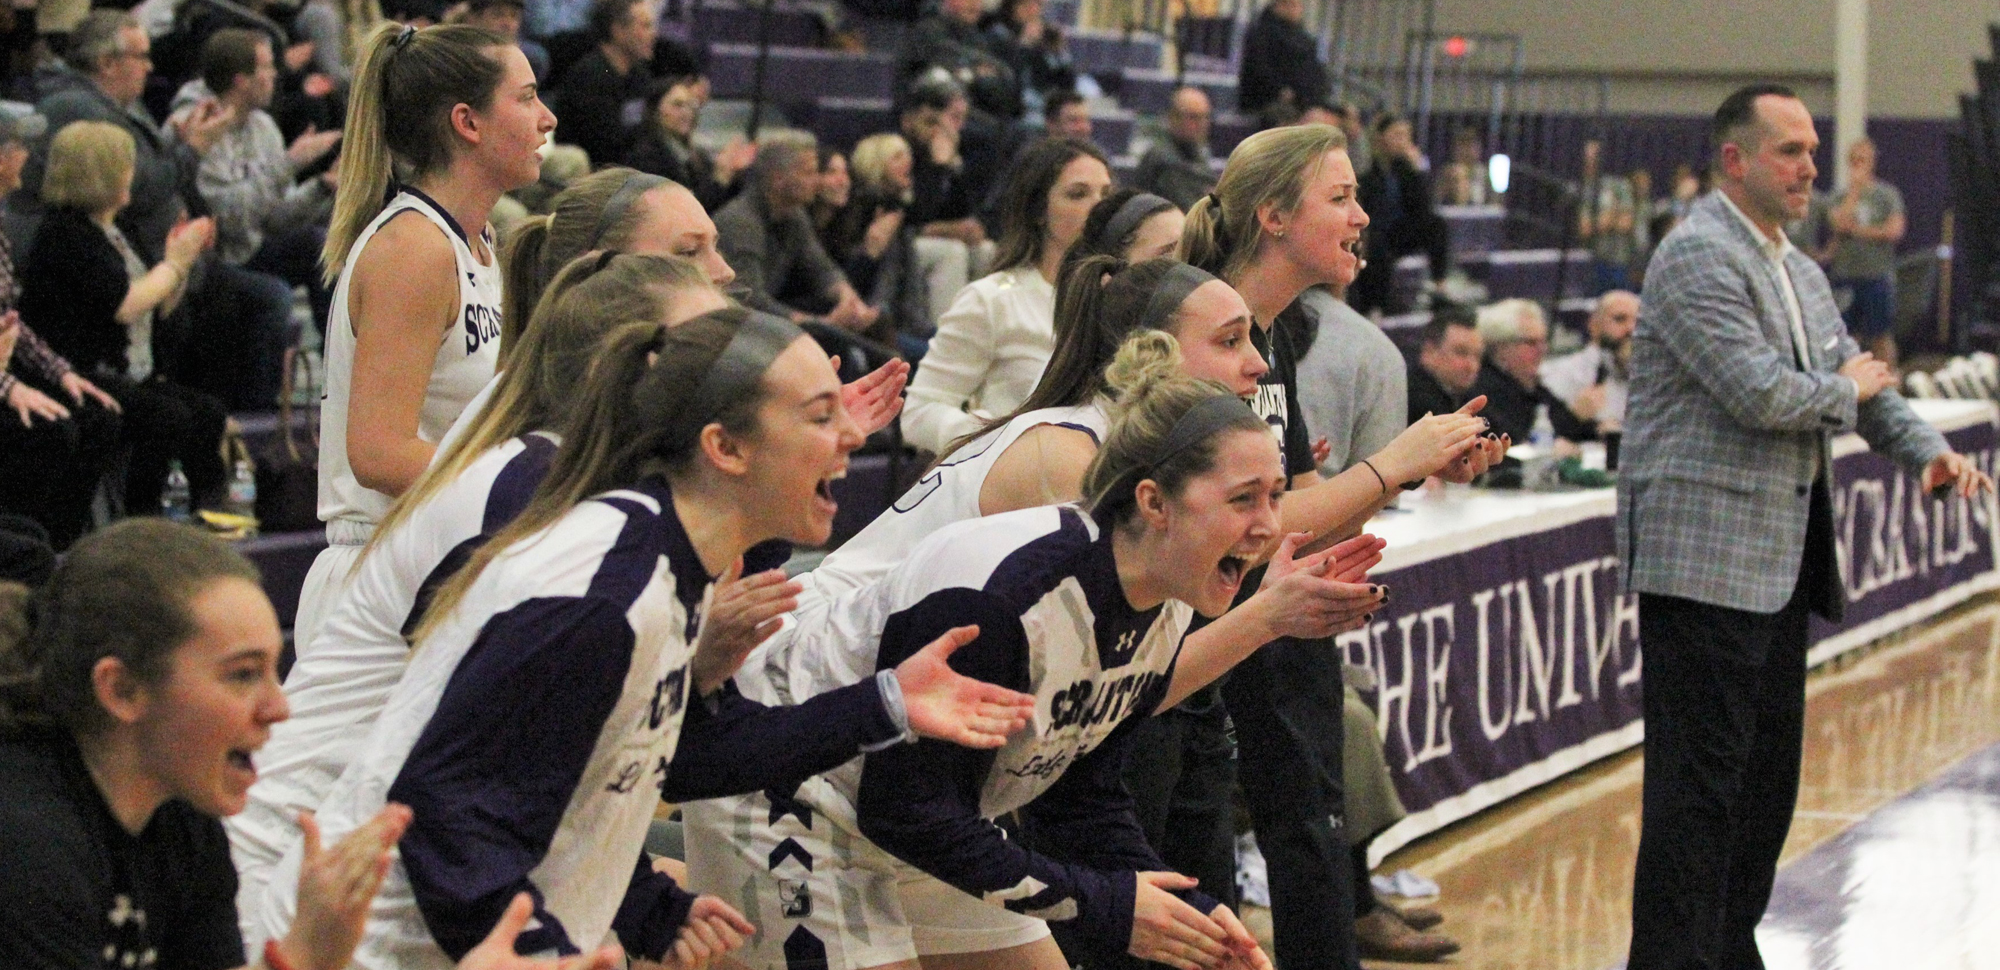 Scranton, 23-2 overall, opens the Landmark Conference playoffs as the number-one seed on Thursday night, as they take on fourth-seeded Moravian inside the John Long Center at 7 p.m.